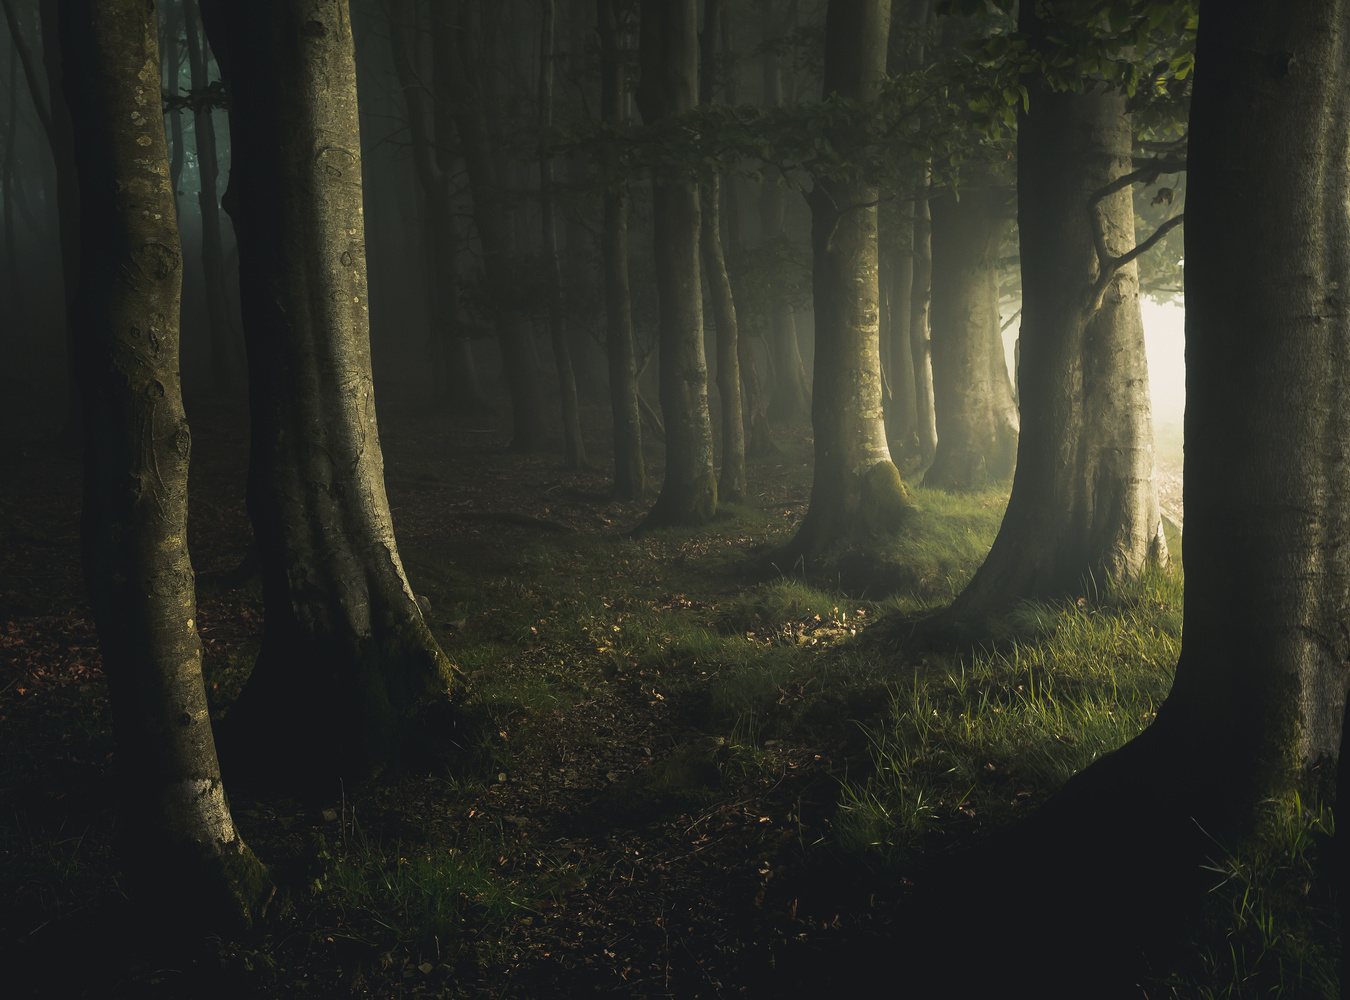 The limit of the forest by Daniel Martin